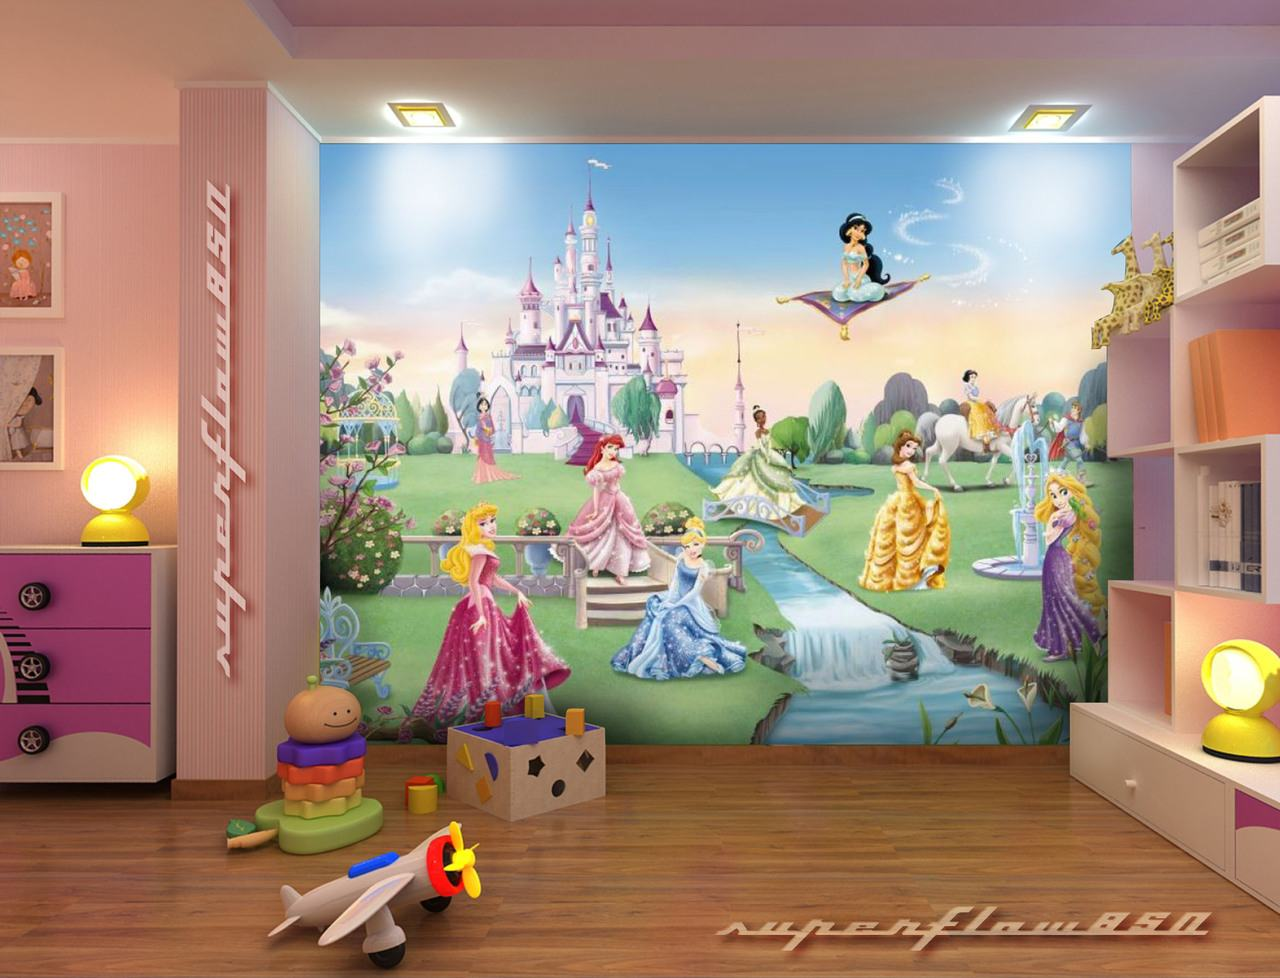 disney Princess Castle Disney Wallpaper Mural KIDS eBay HD Wallpapers 1280x978